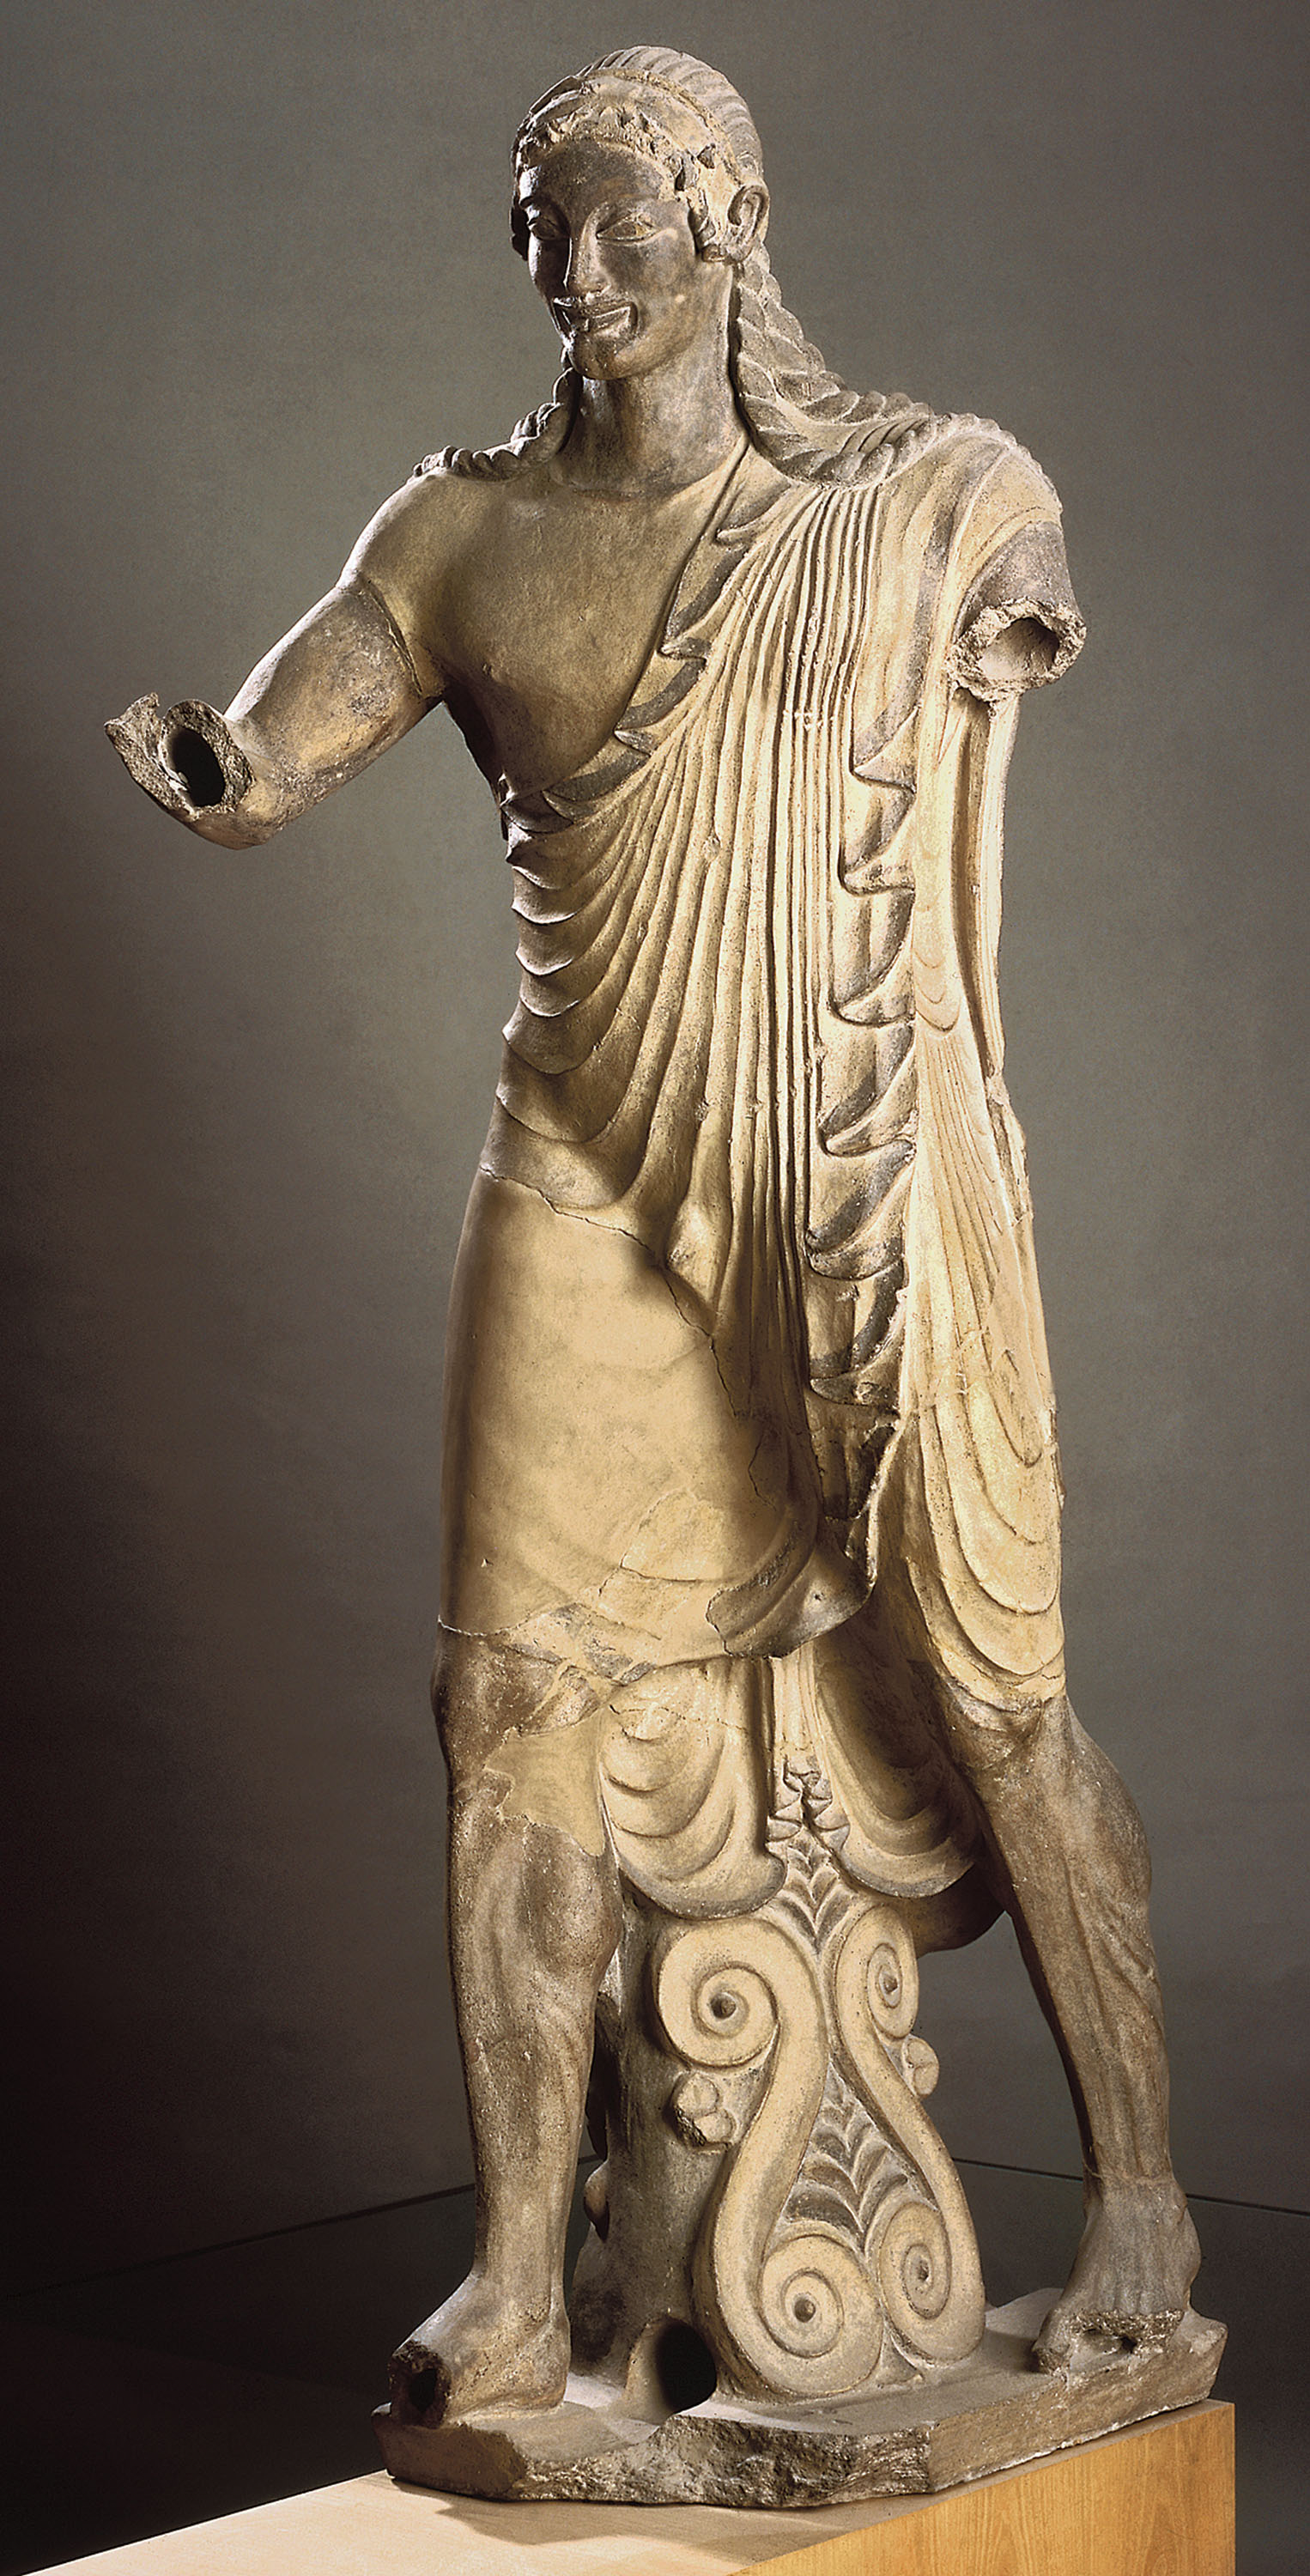 a brief history of the sculpture aphrodite of knidos by sculptor praxiteles See: history of sculpture praxiteles (375-335 bce) one of the most famous and greatest sculptors of ancient greece, praxiteles' career bridged the late classical period and the hellenistic period of greek art.